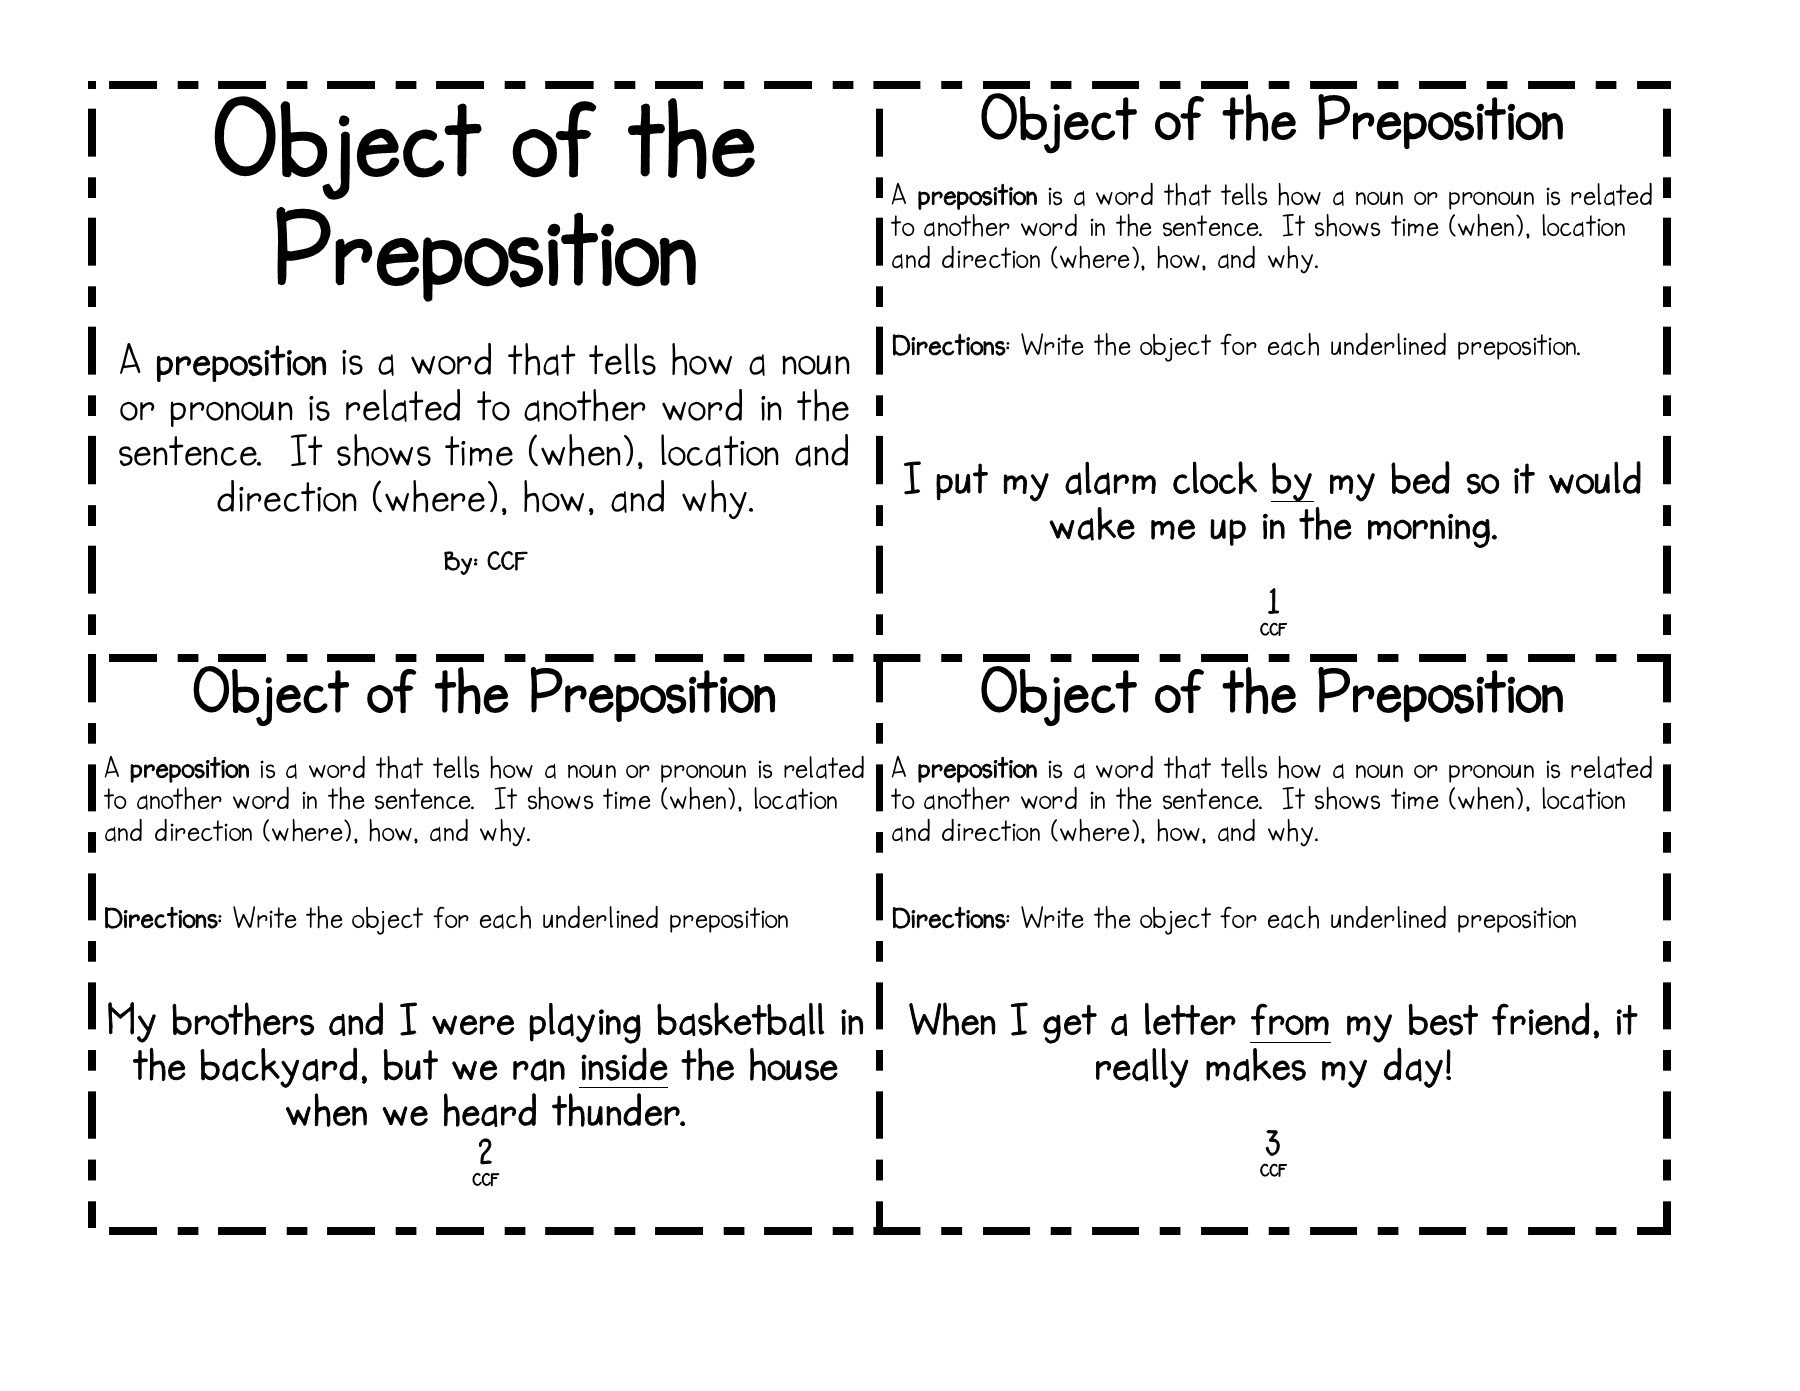 Object Of The Object Of The Preposition Preposition Pages 1 7